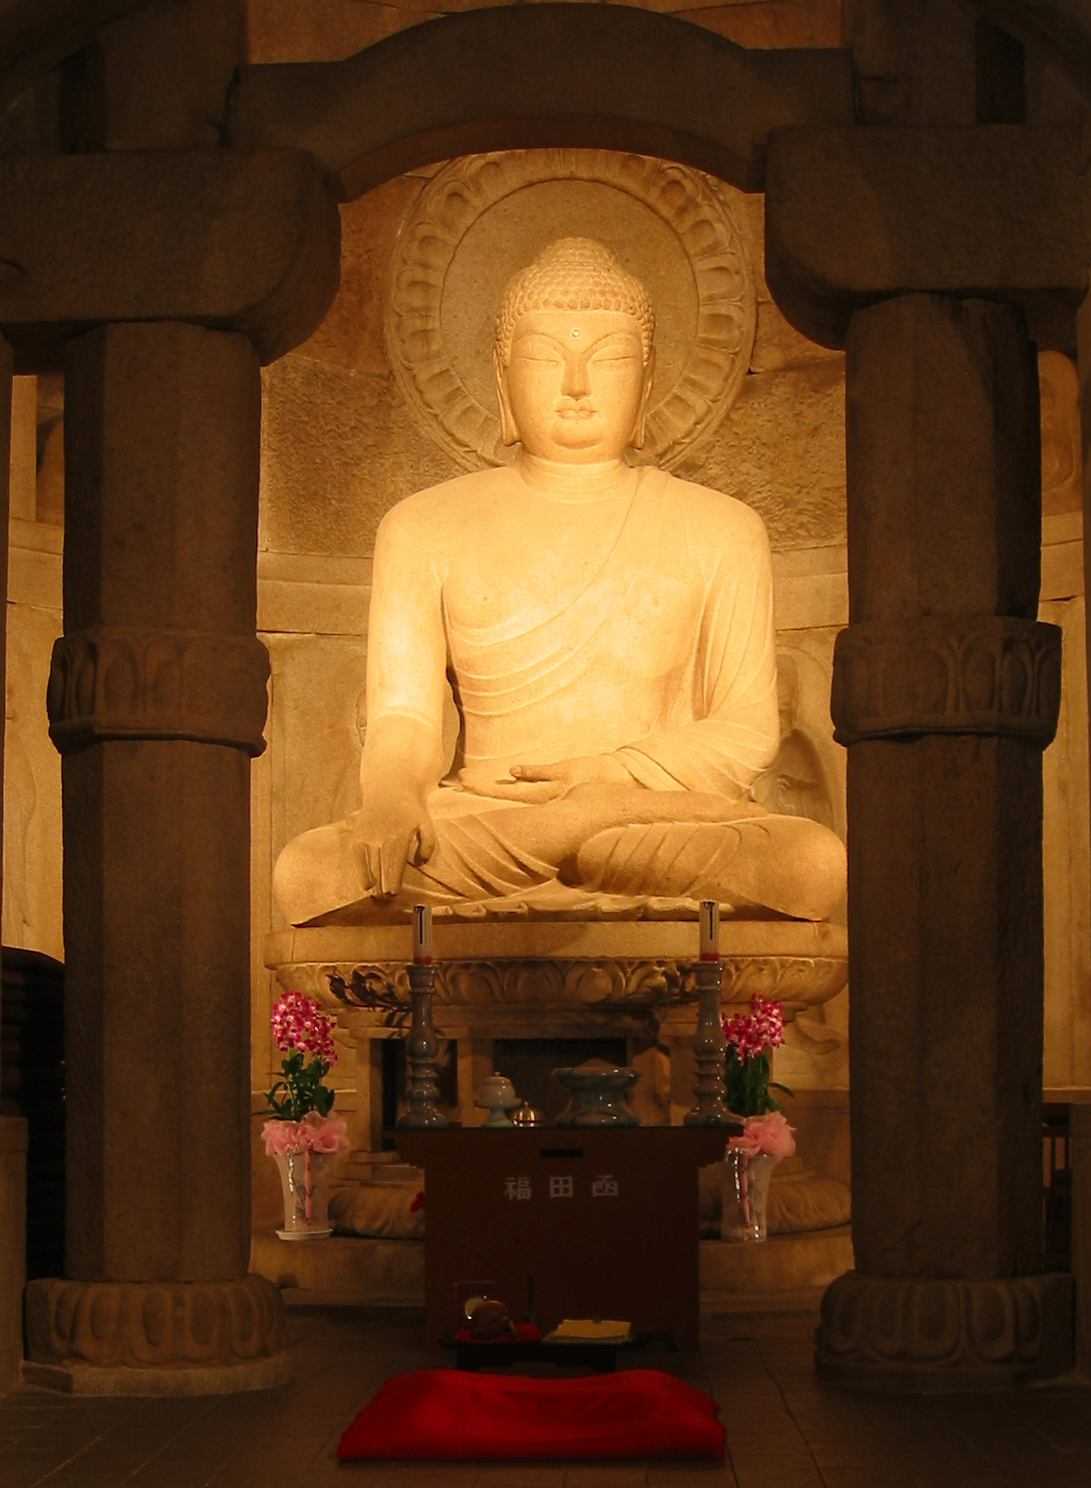 Seokguram Buddha - from Wikipedia